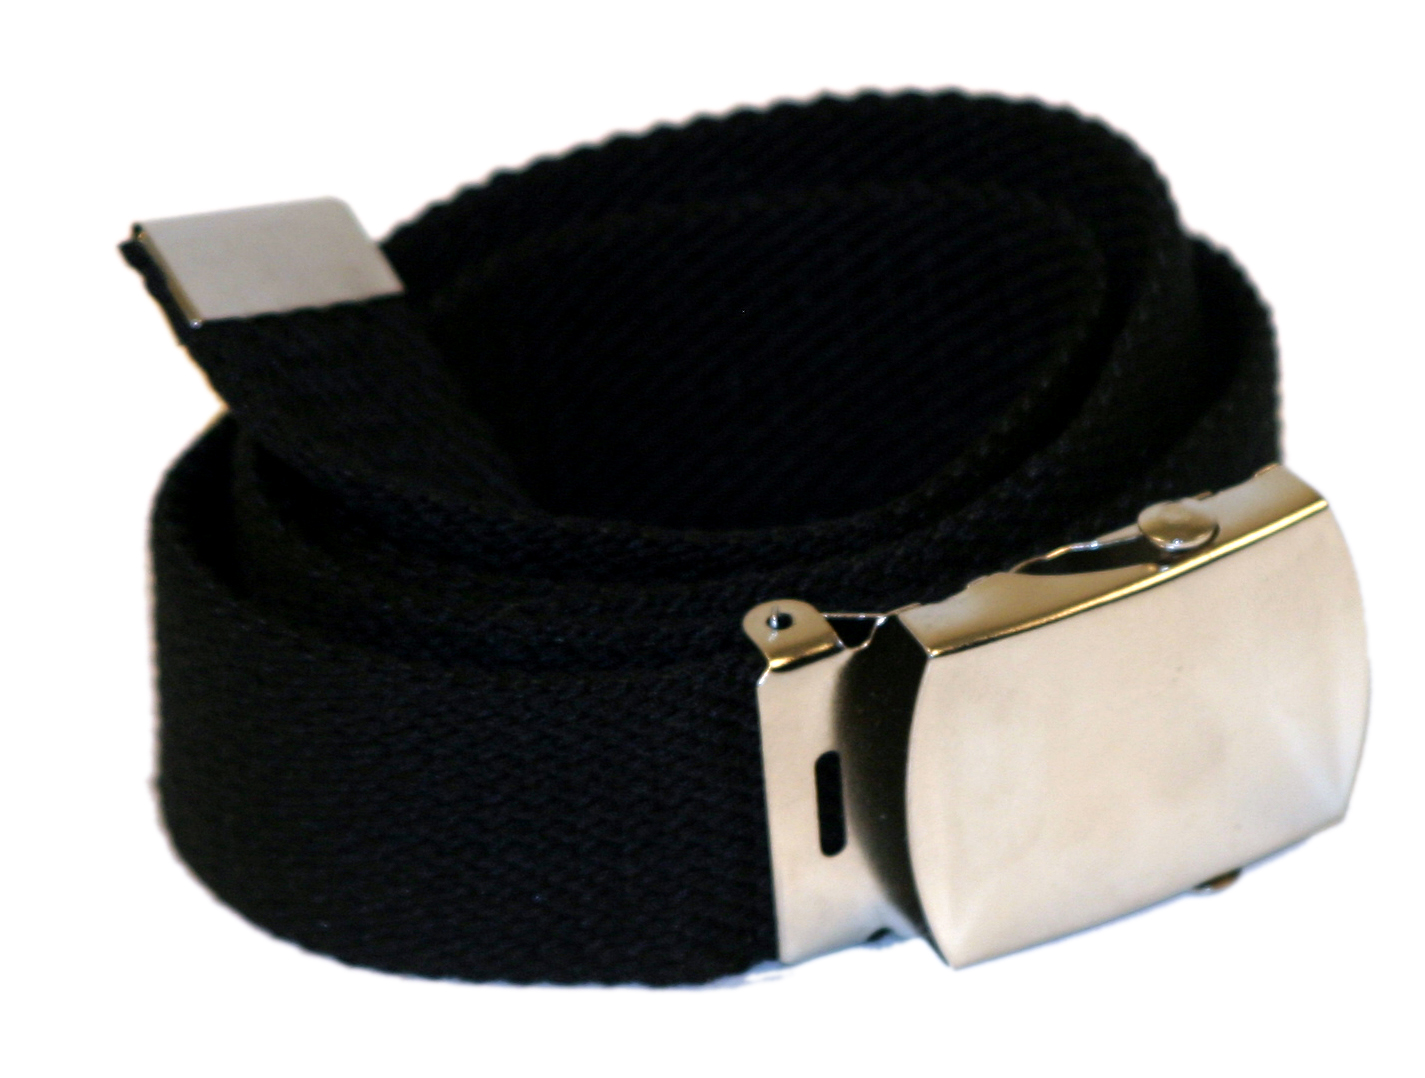 Army belt 35 mm (black)